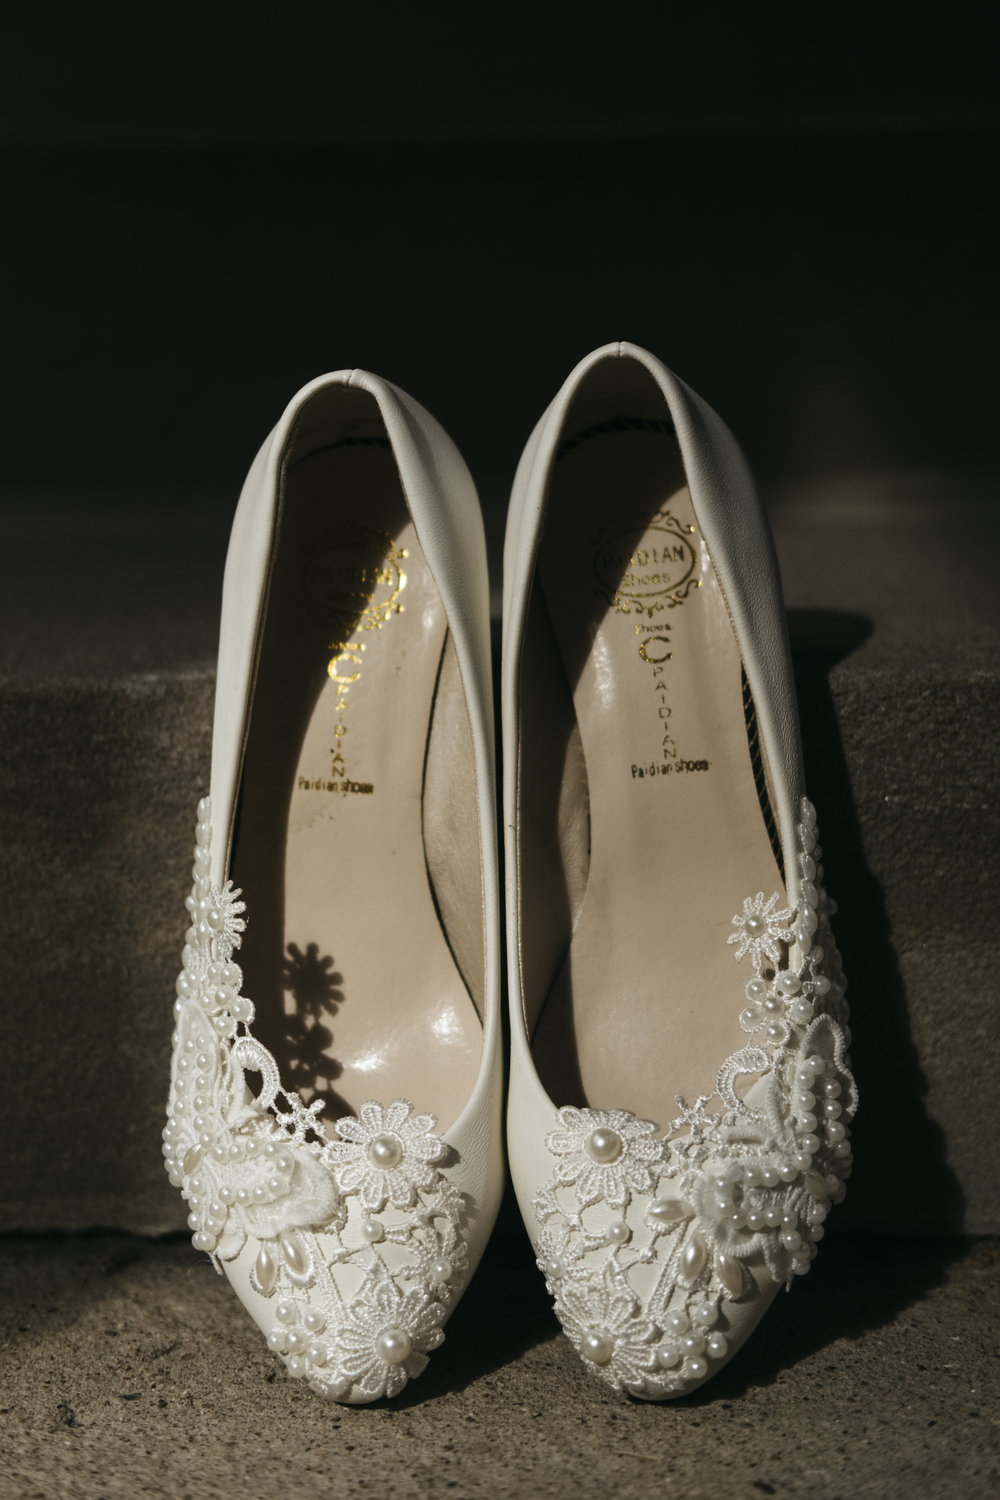 The bride's shoes came with lace detailing, floral, and pearls for her Ohio wedding ceremony